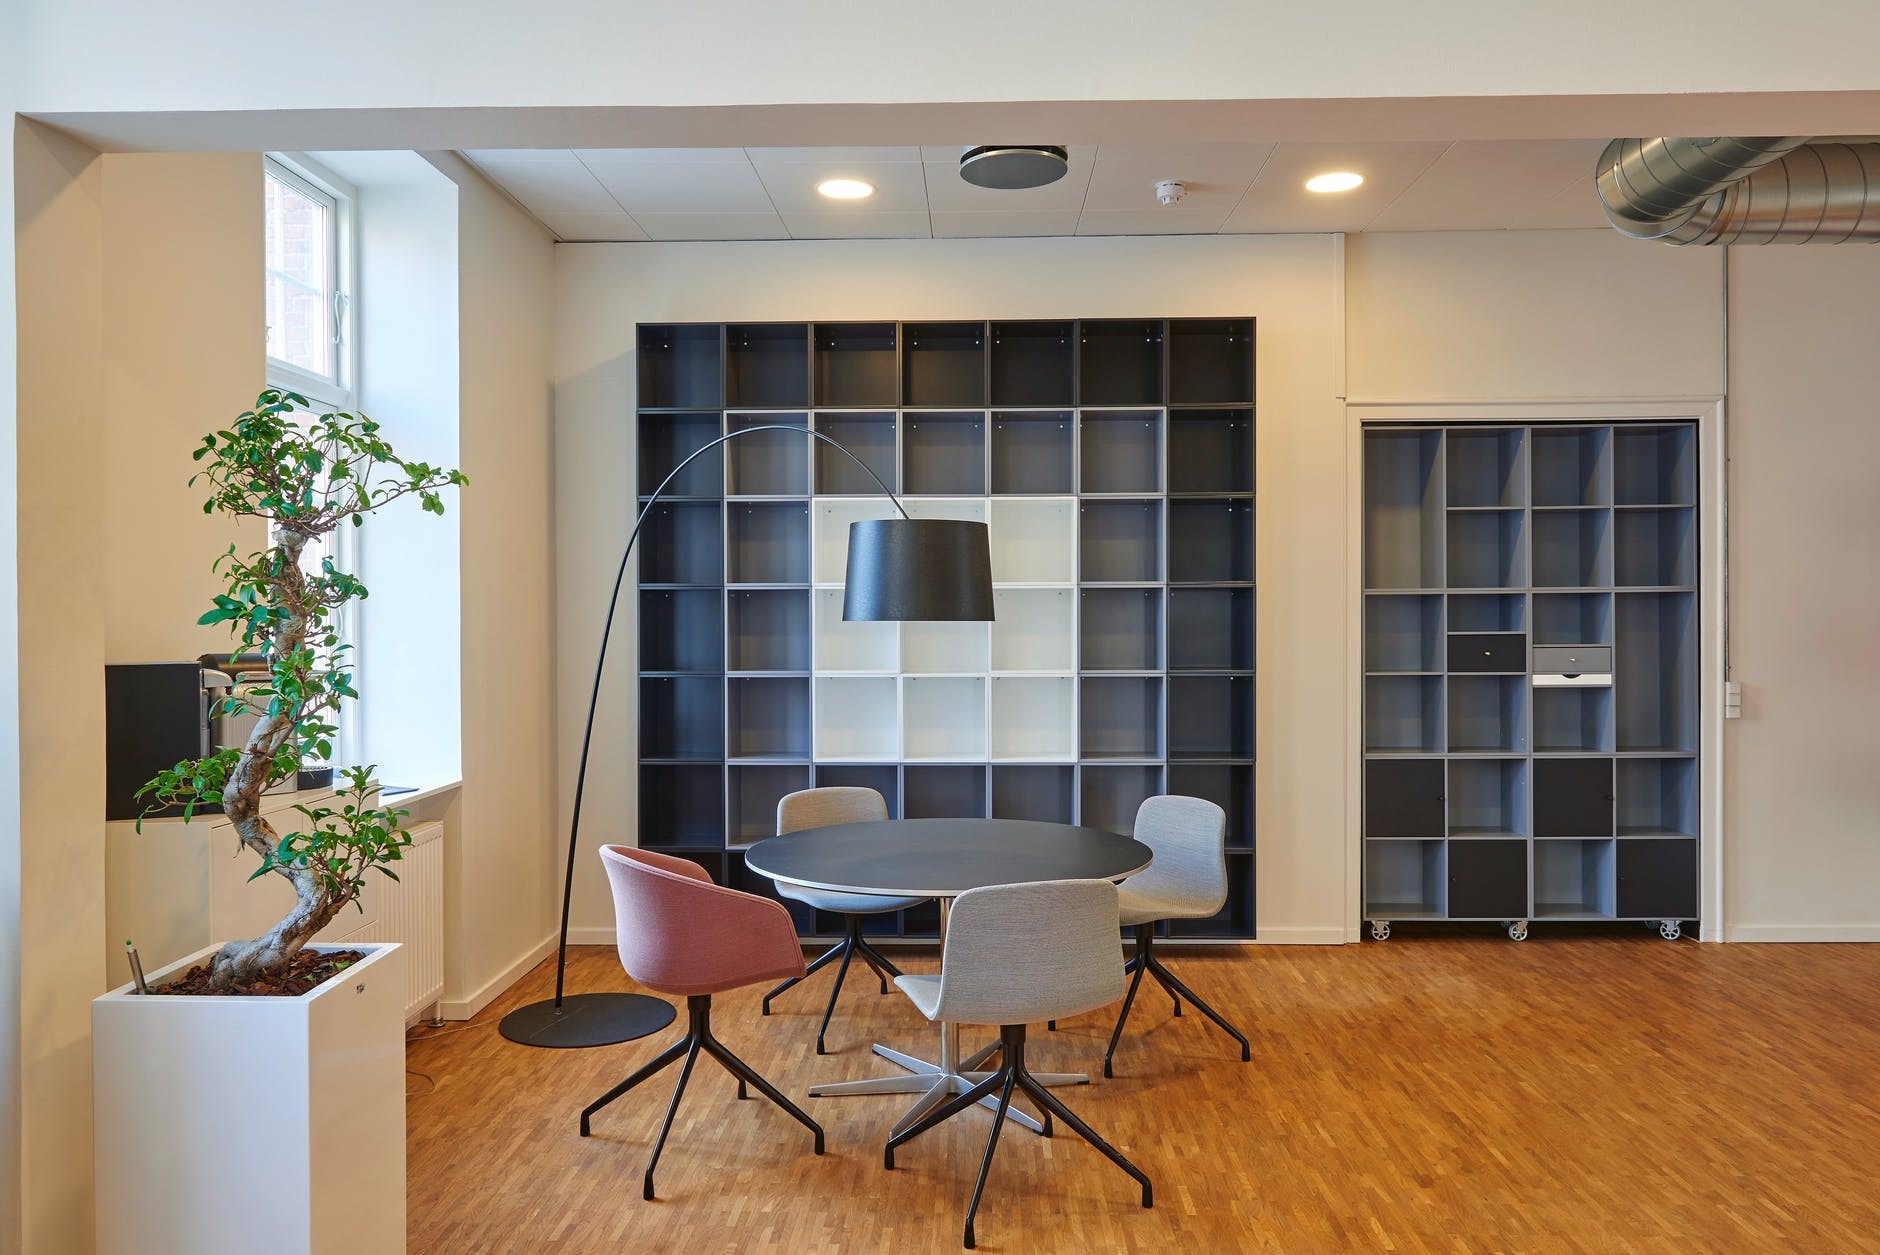 architecture-bookshelves-library-table-meeting room